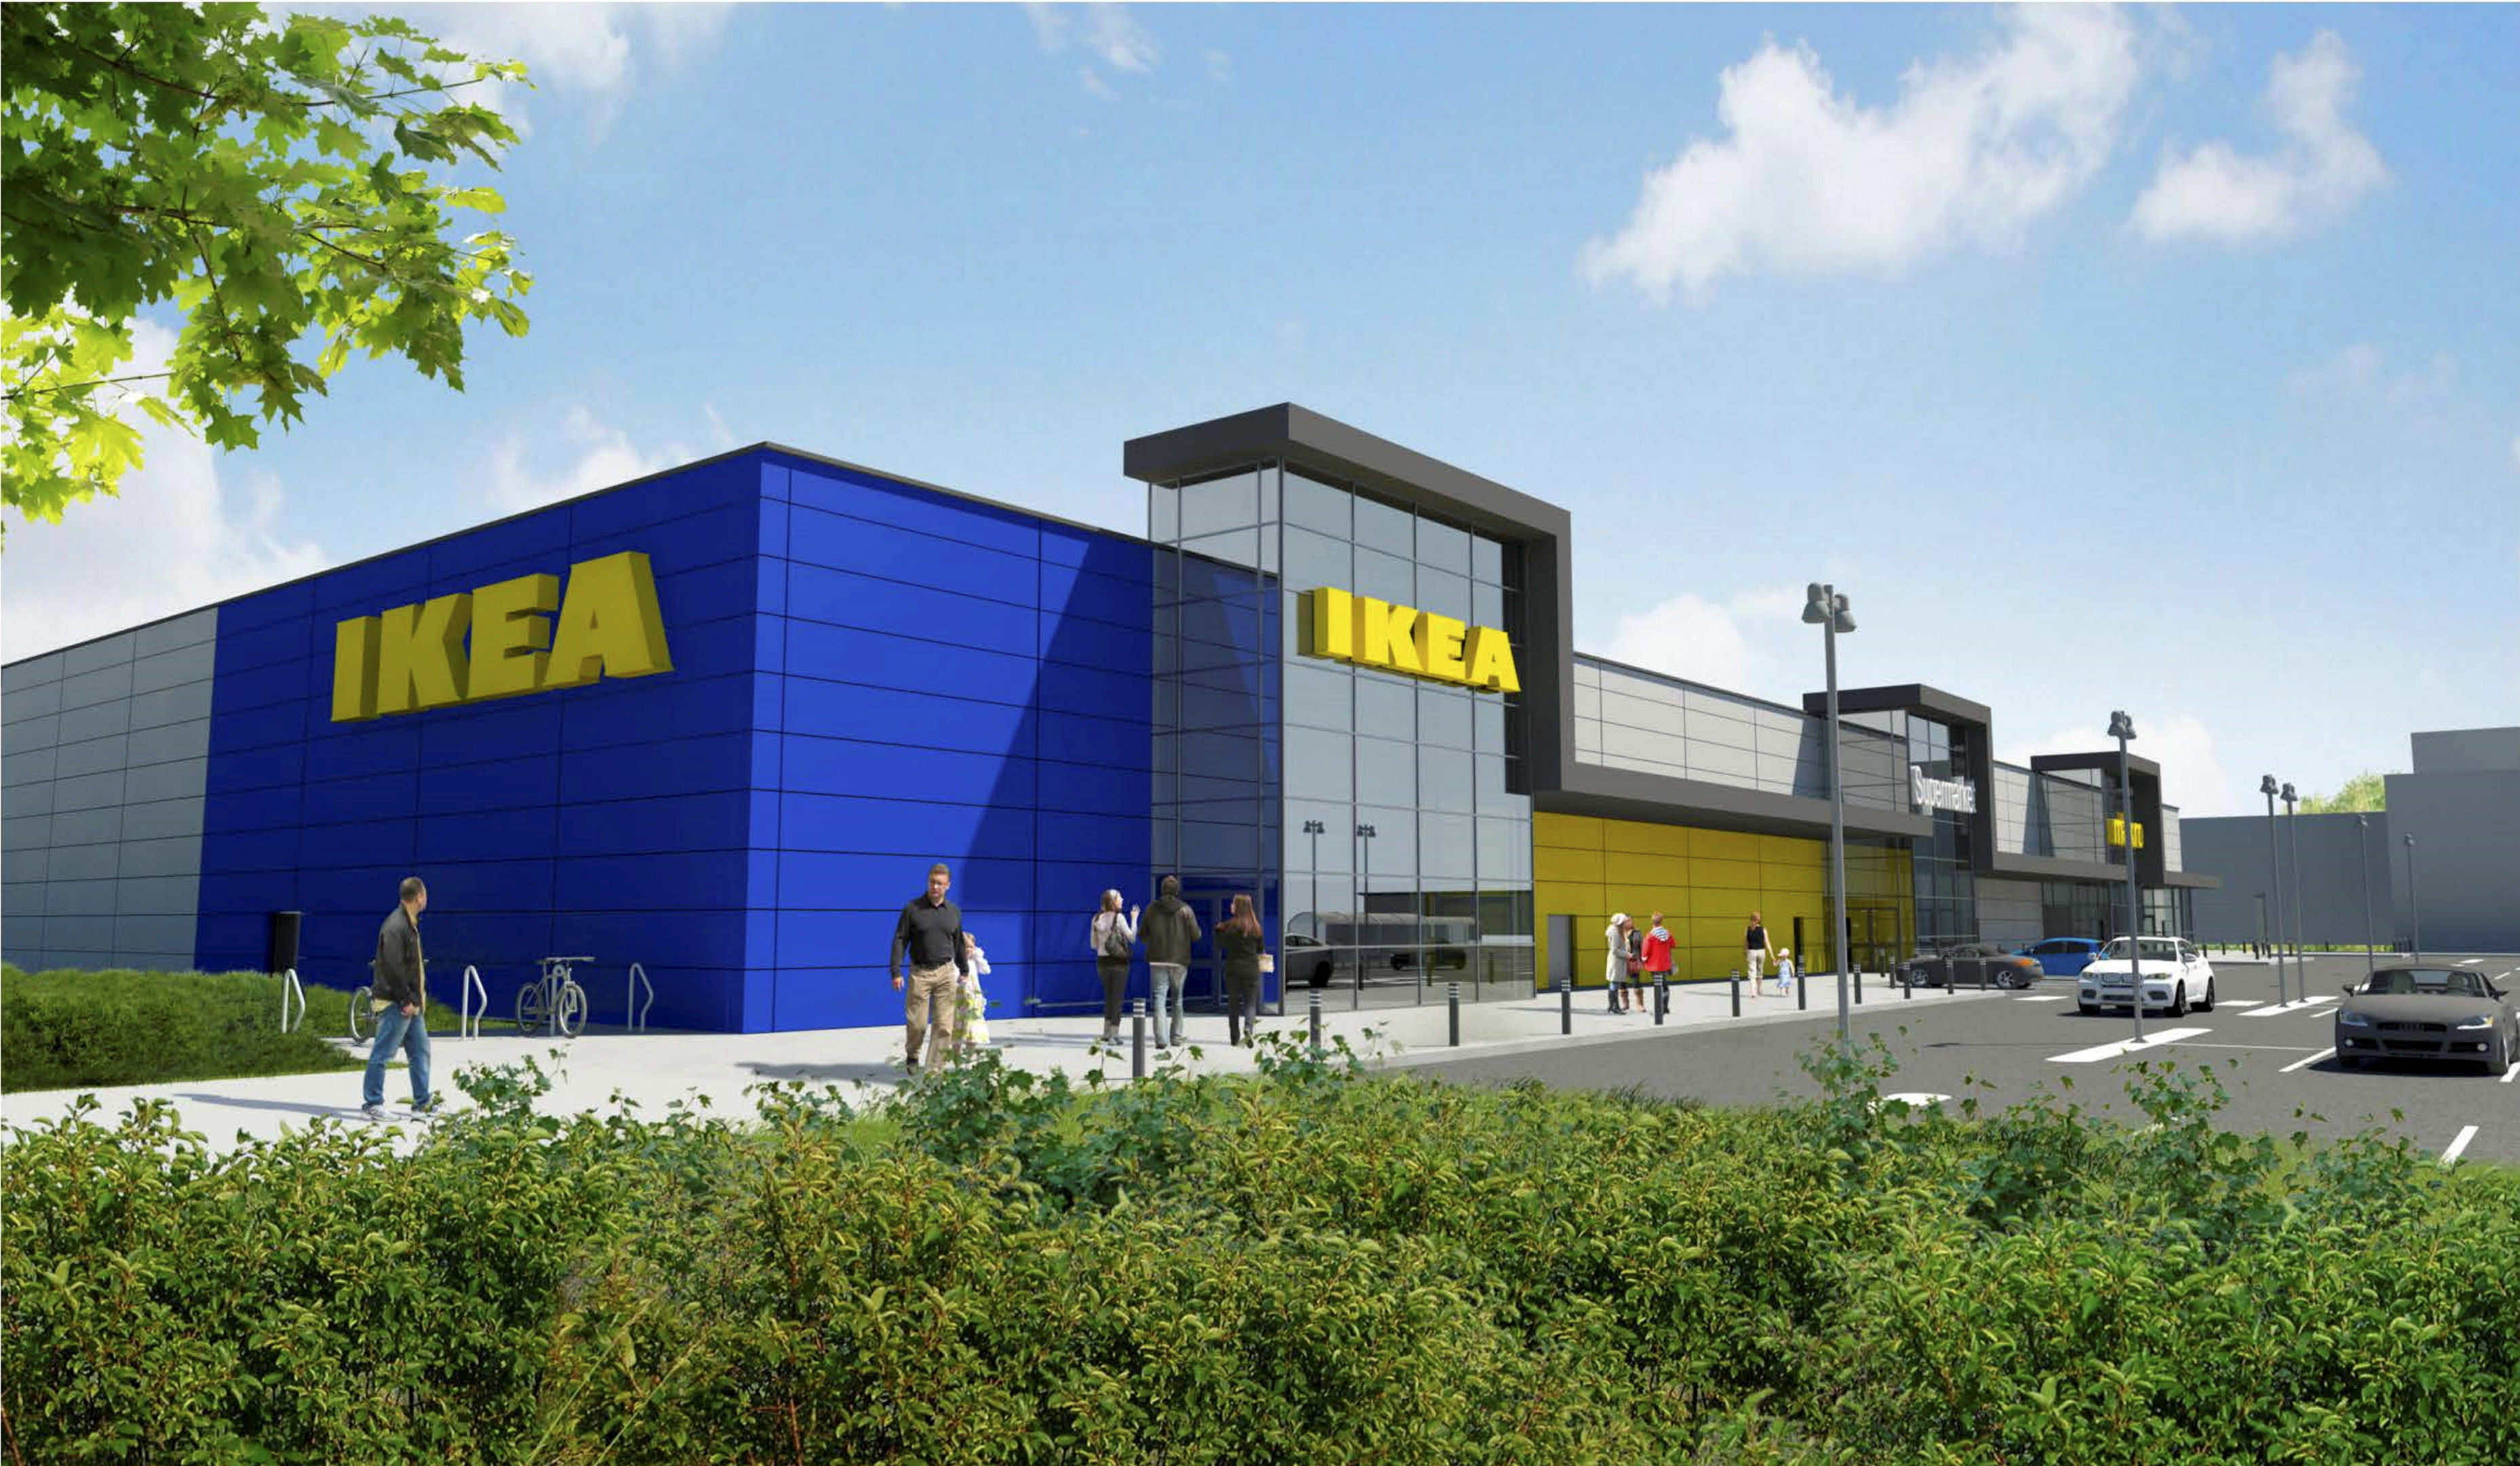 An artist's impression of what the finished IKEA could look like.